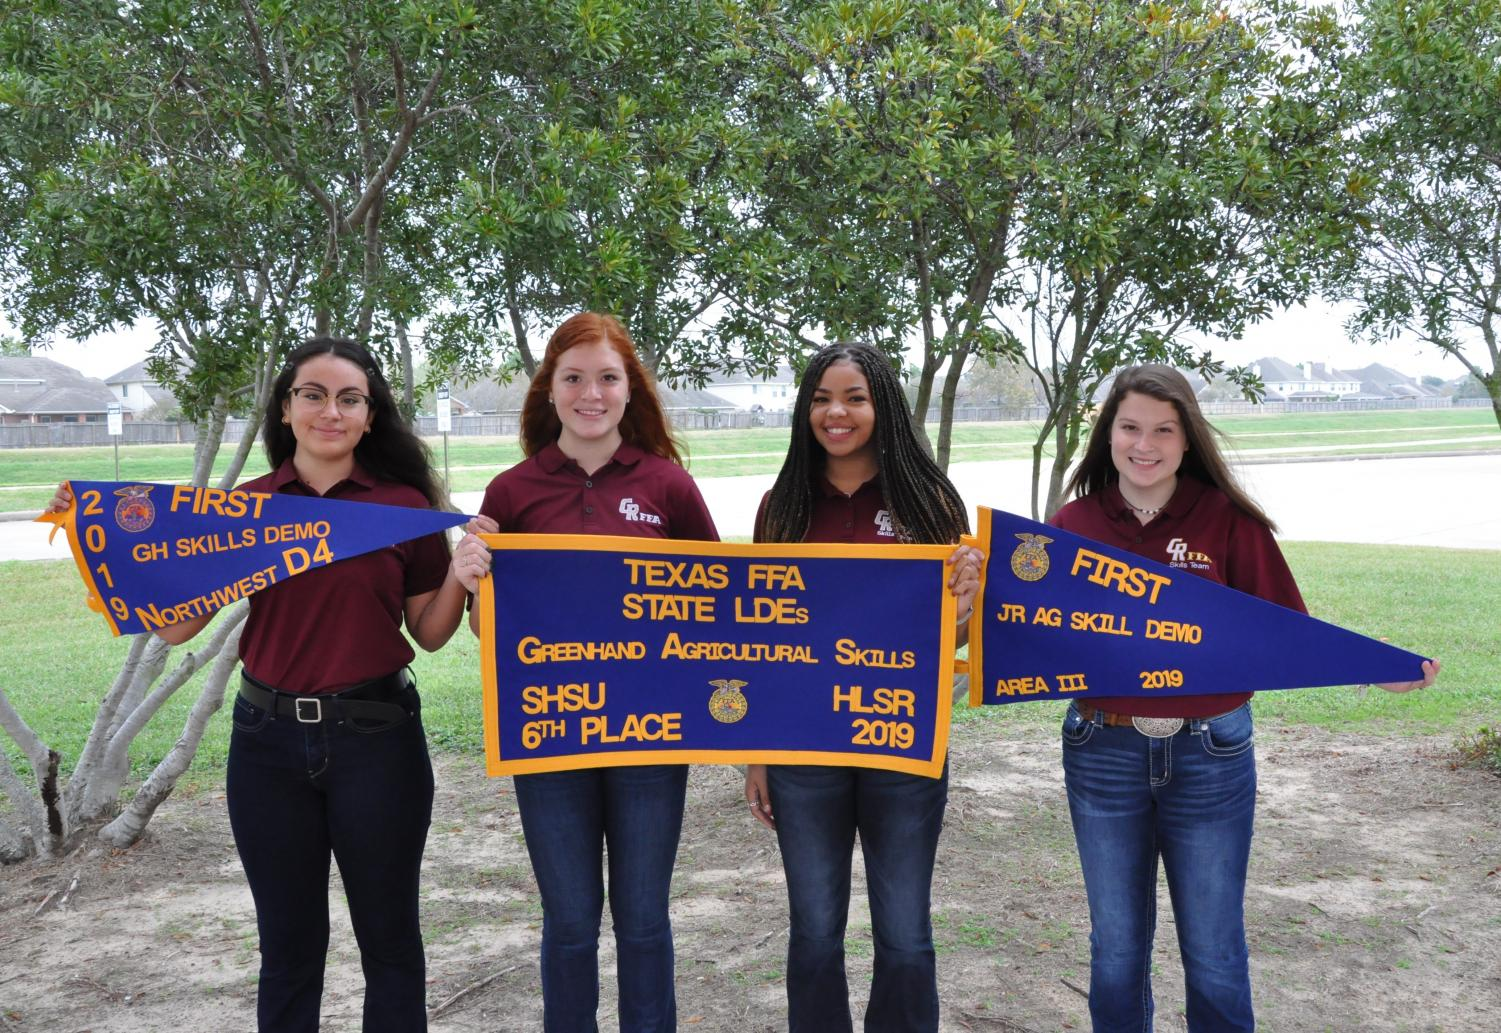 Greenhand FFA skills team with their 6th place award flags